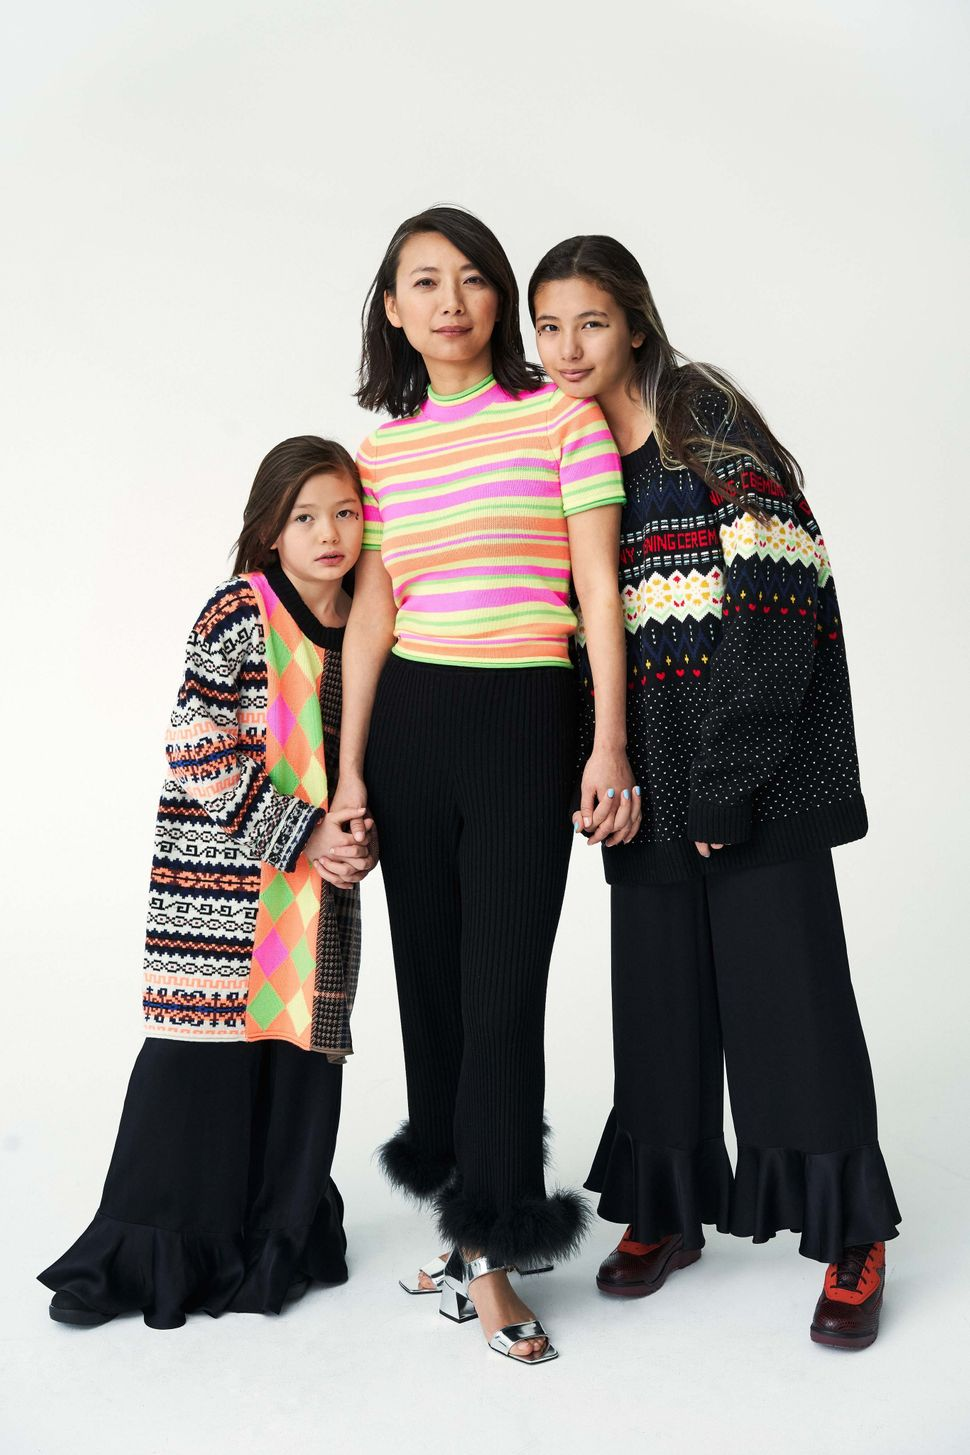 Jing Liu (architect, founder of design firm SO-IL), with her daughters Amalia and Francis